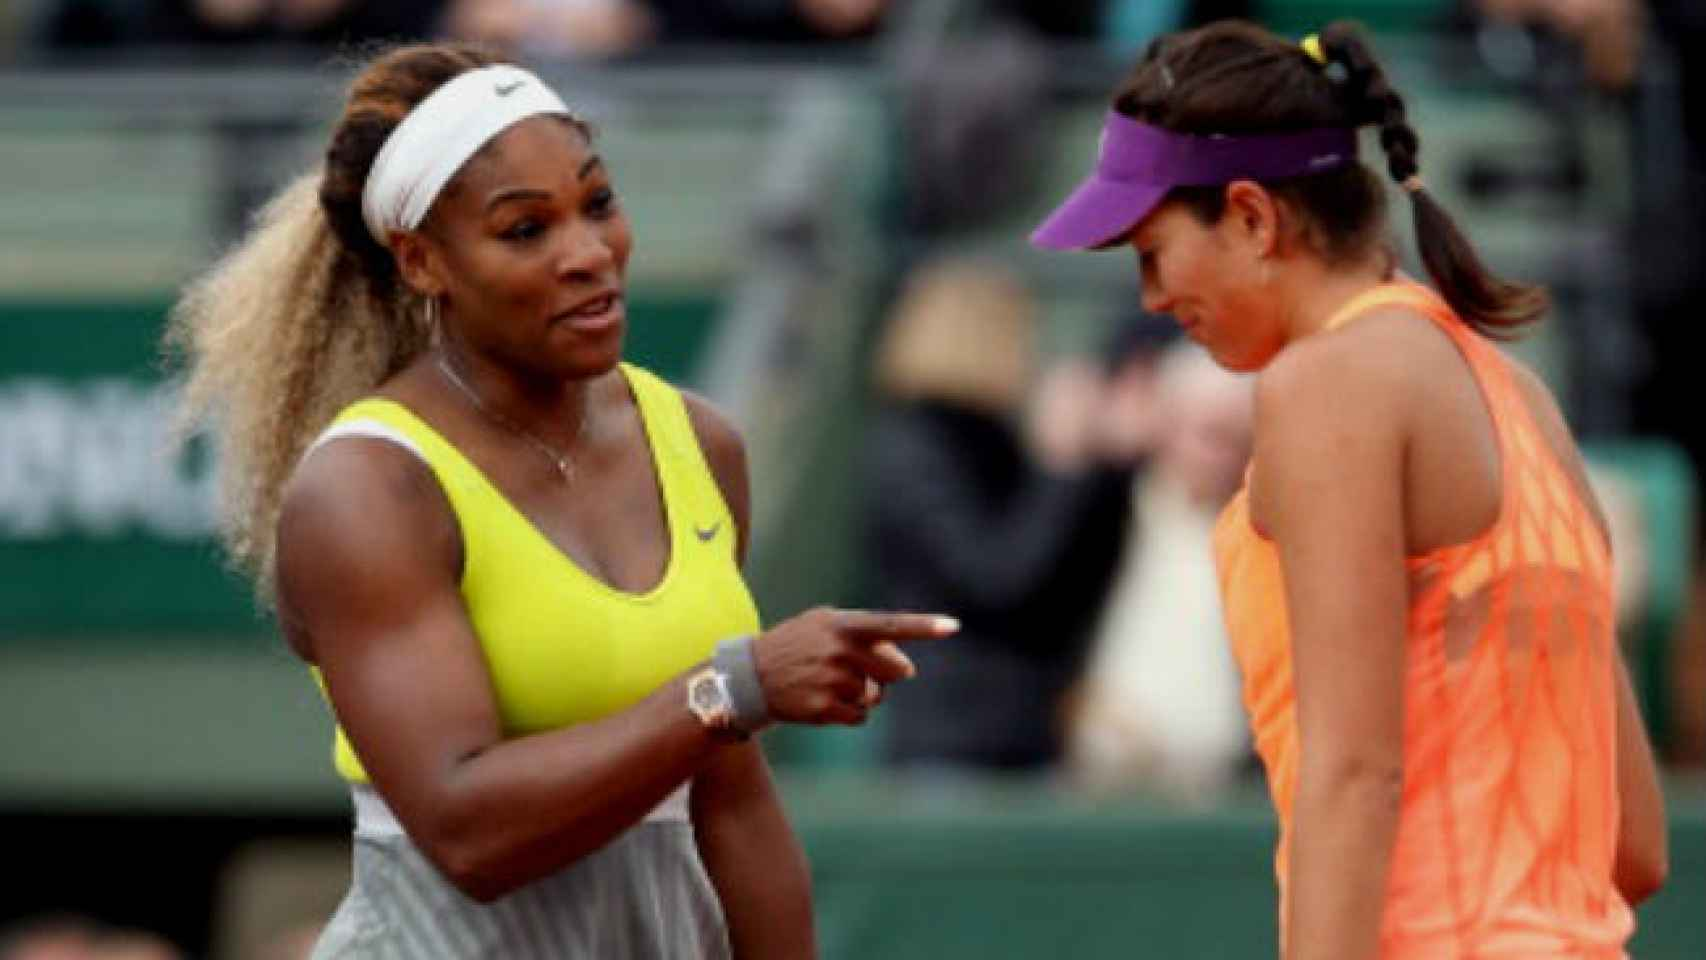 Serena Williams y Garbiñe son duras rivales